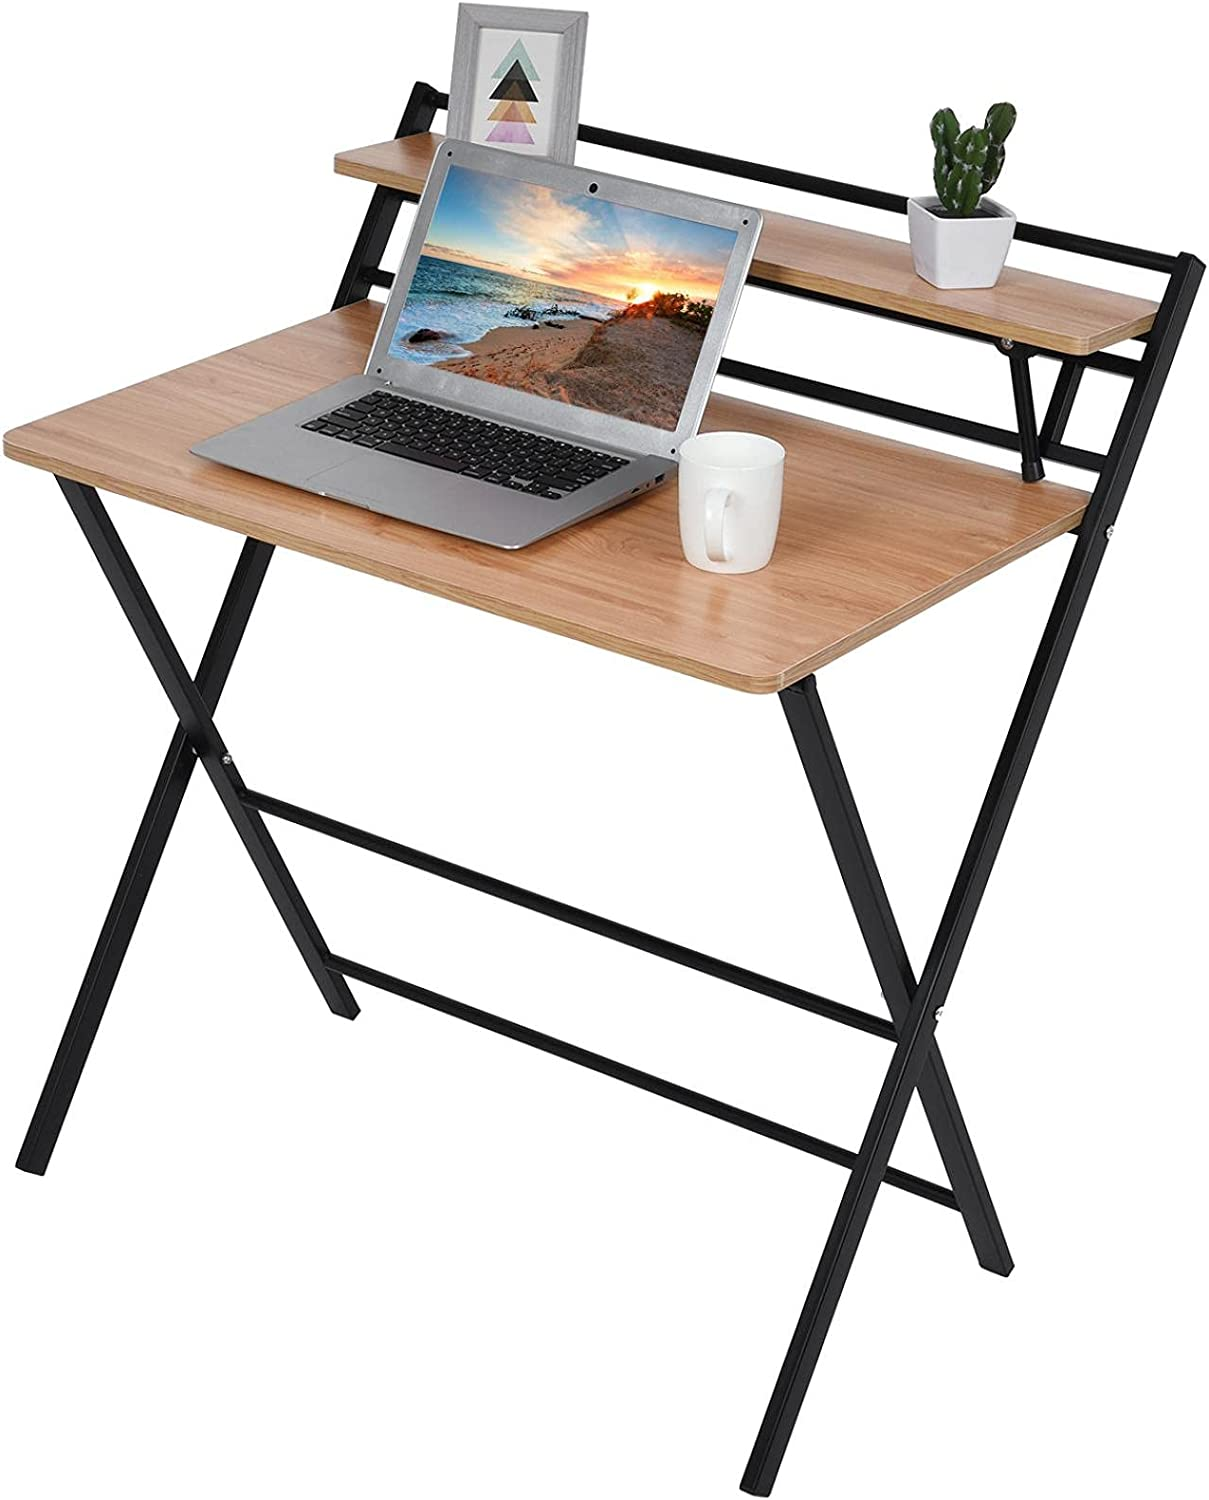 Folding Computer Seasonal Wrap Introduction Desk for Small 2 Assem Layer Free Product Space-UINKISY